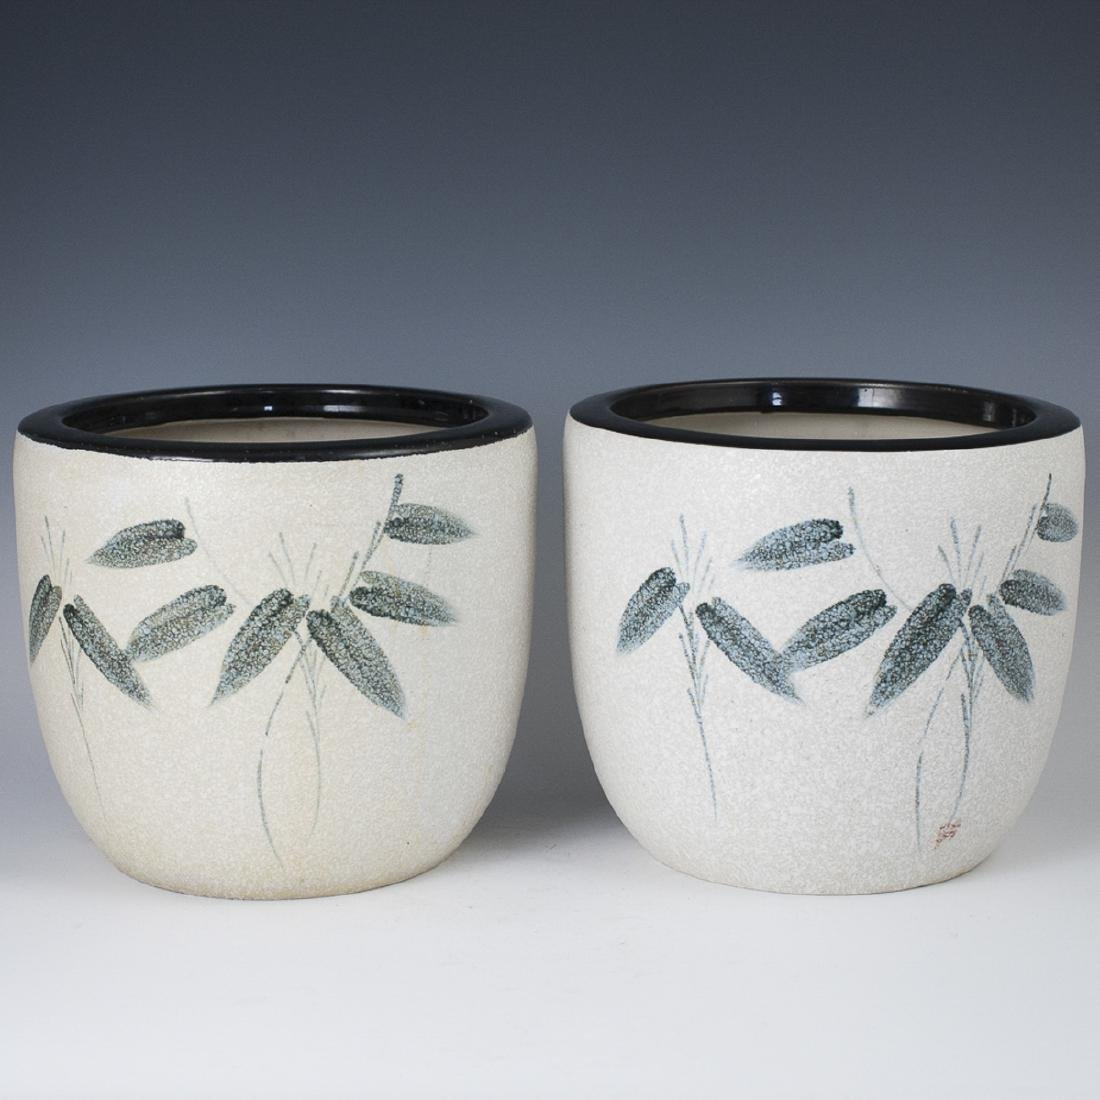 Antique Japanese Pottery Planters